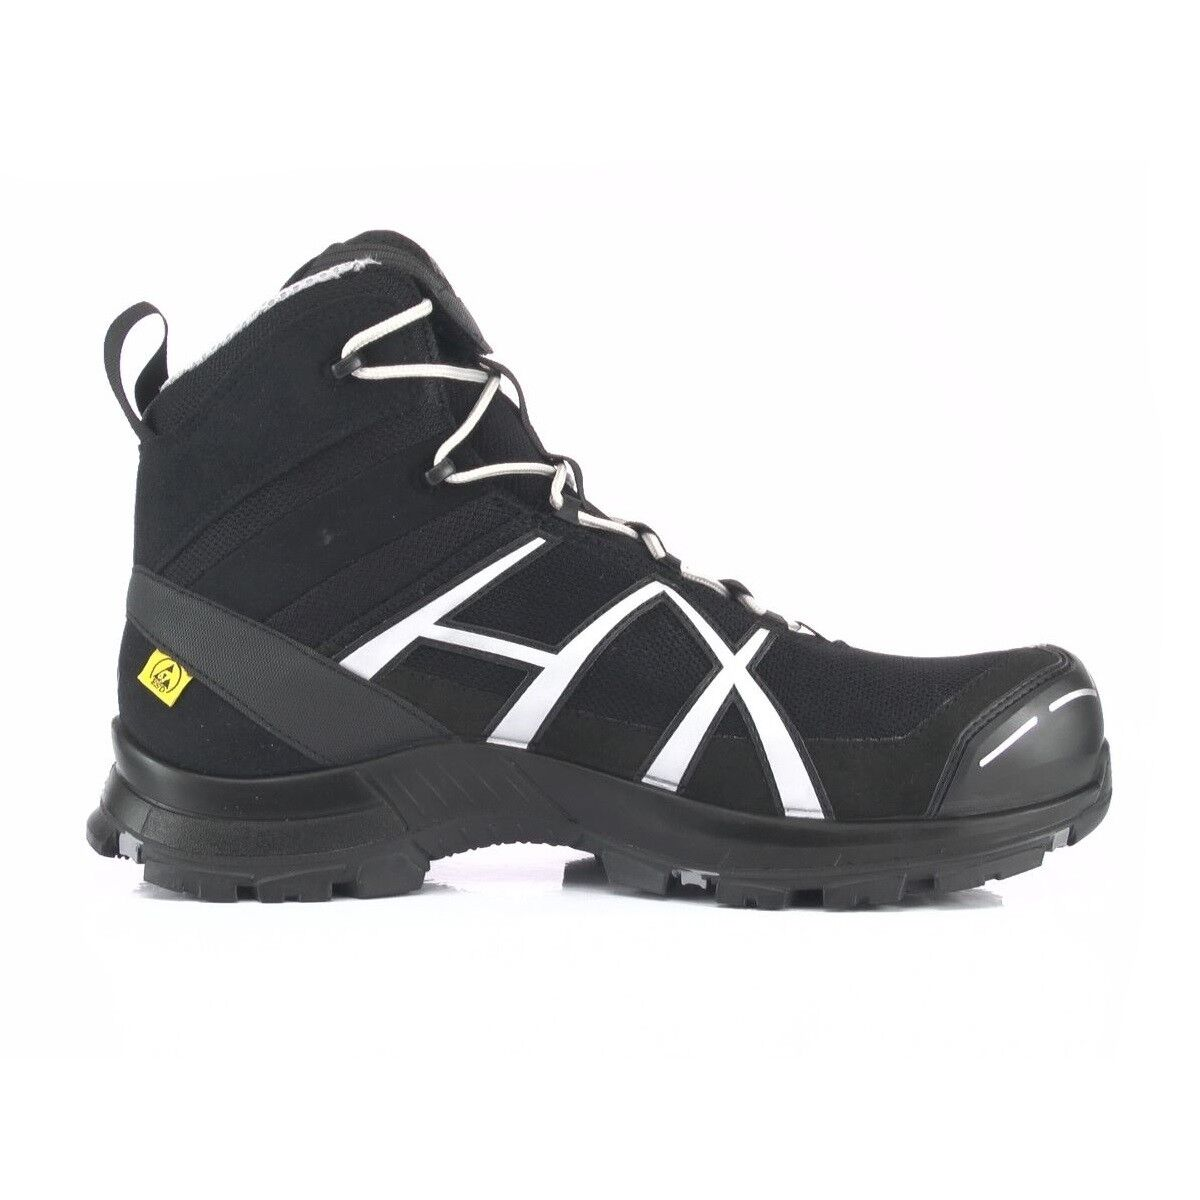 HAIX NERO EAGLE Safety SICUREZZA 40 610019 GORE-TEX SCARPE SICUREZZA Safety snickersdir 7a377c